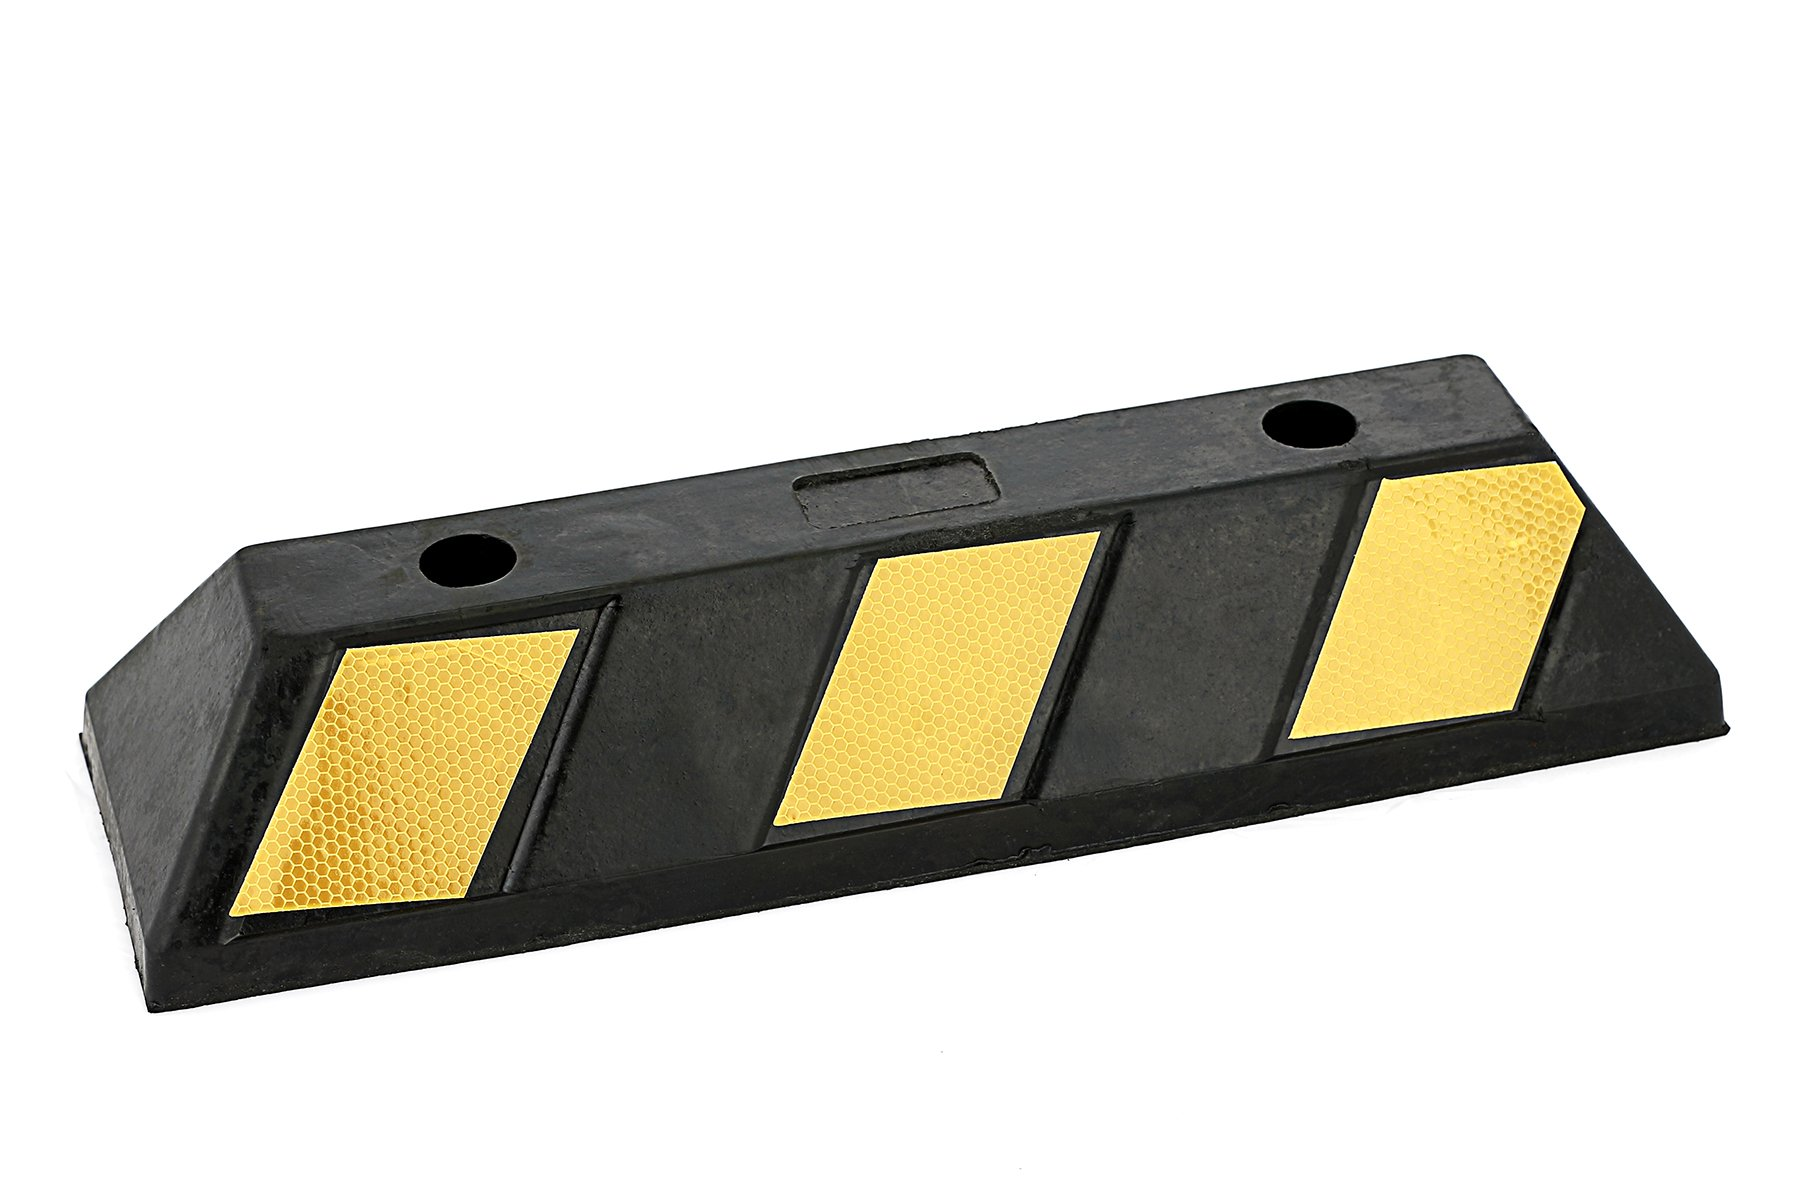 Victus Garage Vehicle Parking Block, Black Heavy Duty Rubber Curb with 6 High Reflective Yellow Targets for Car, Truck, RV and Trailer Stop Aid, 19.7 Inches Long x 4 Inches High